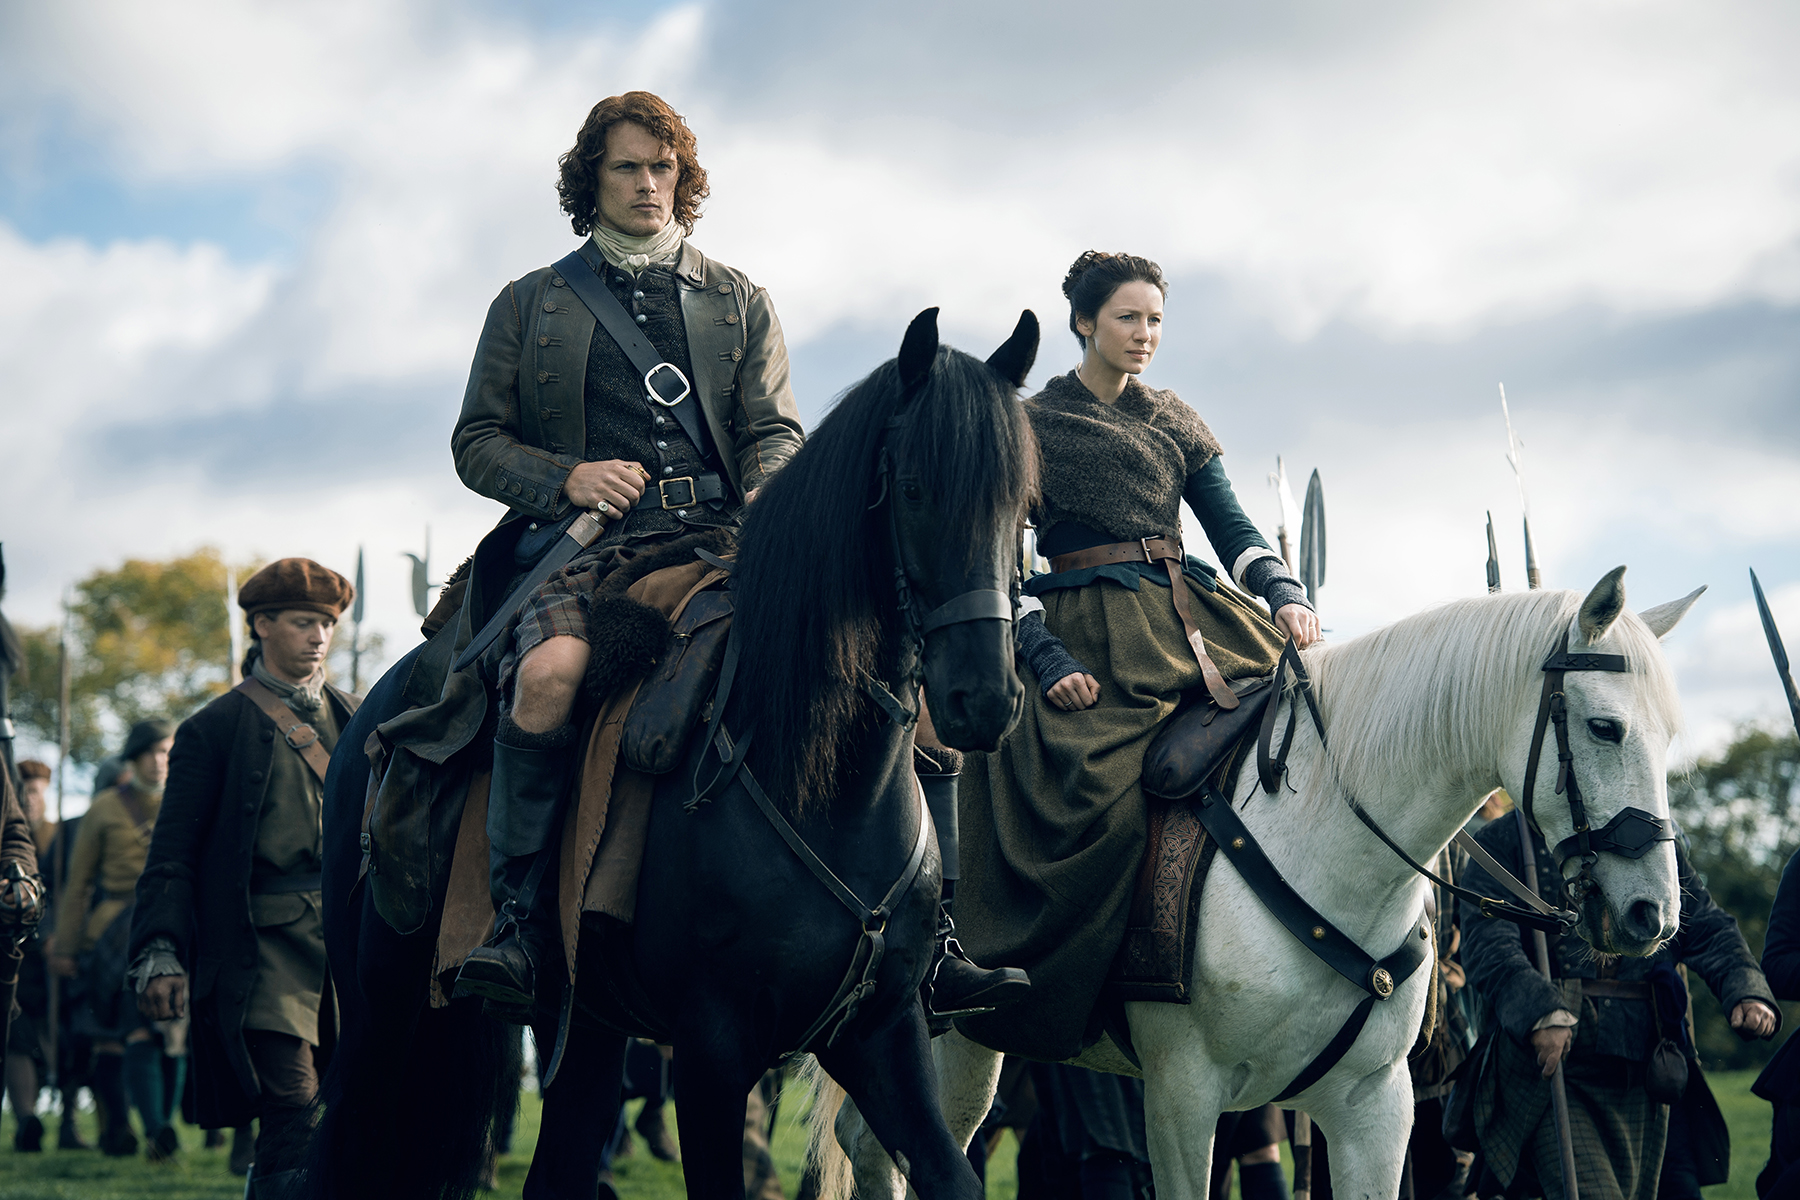 And my beloved Frasers will have come back to me. (On left, Sam Heughan as Jamie Fraser. On right, Caitriona Balfe as Claire Fraser. Courtesy Starz.)